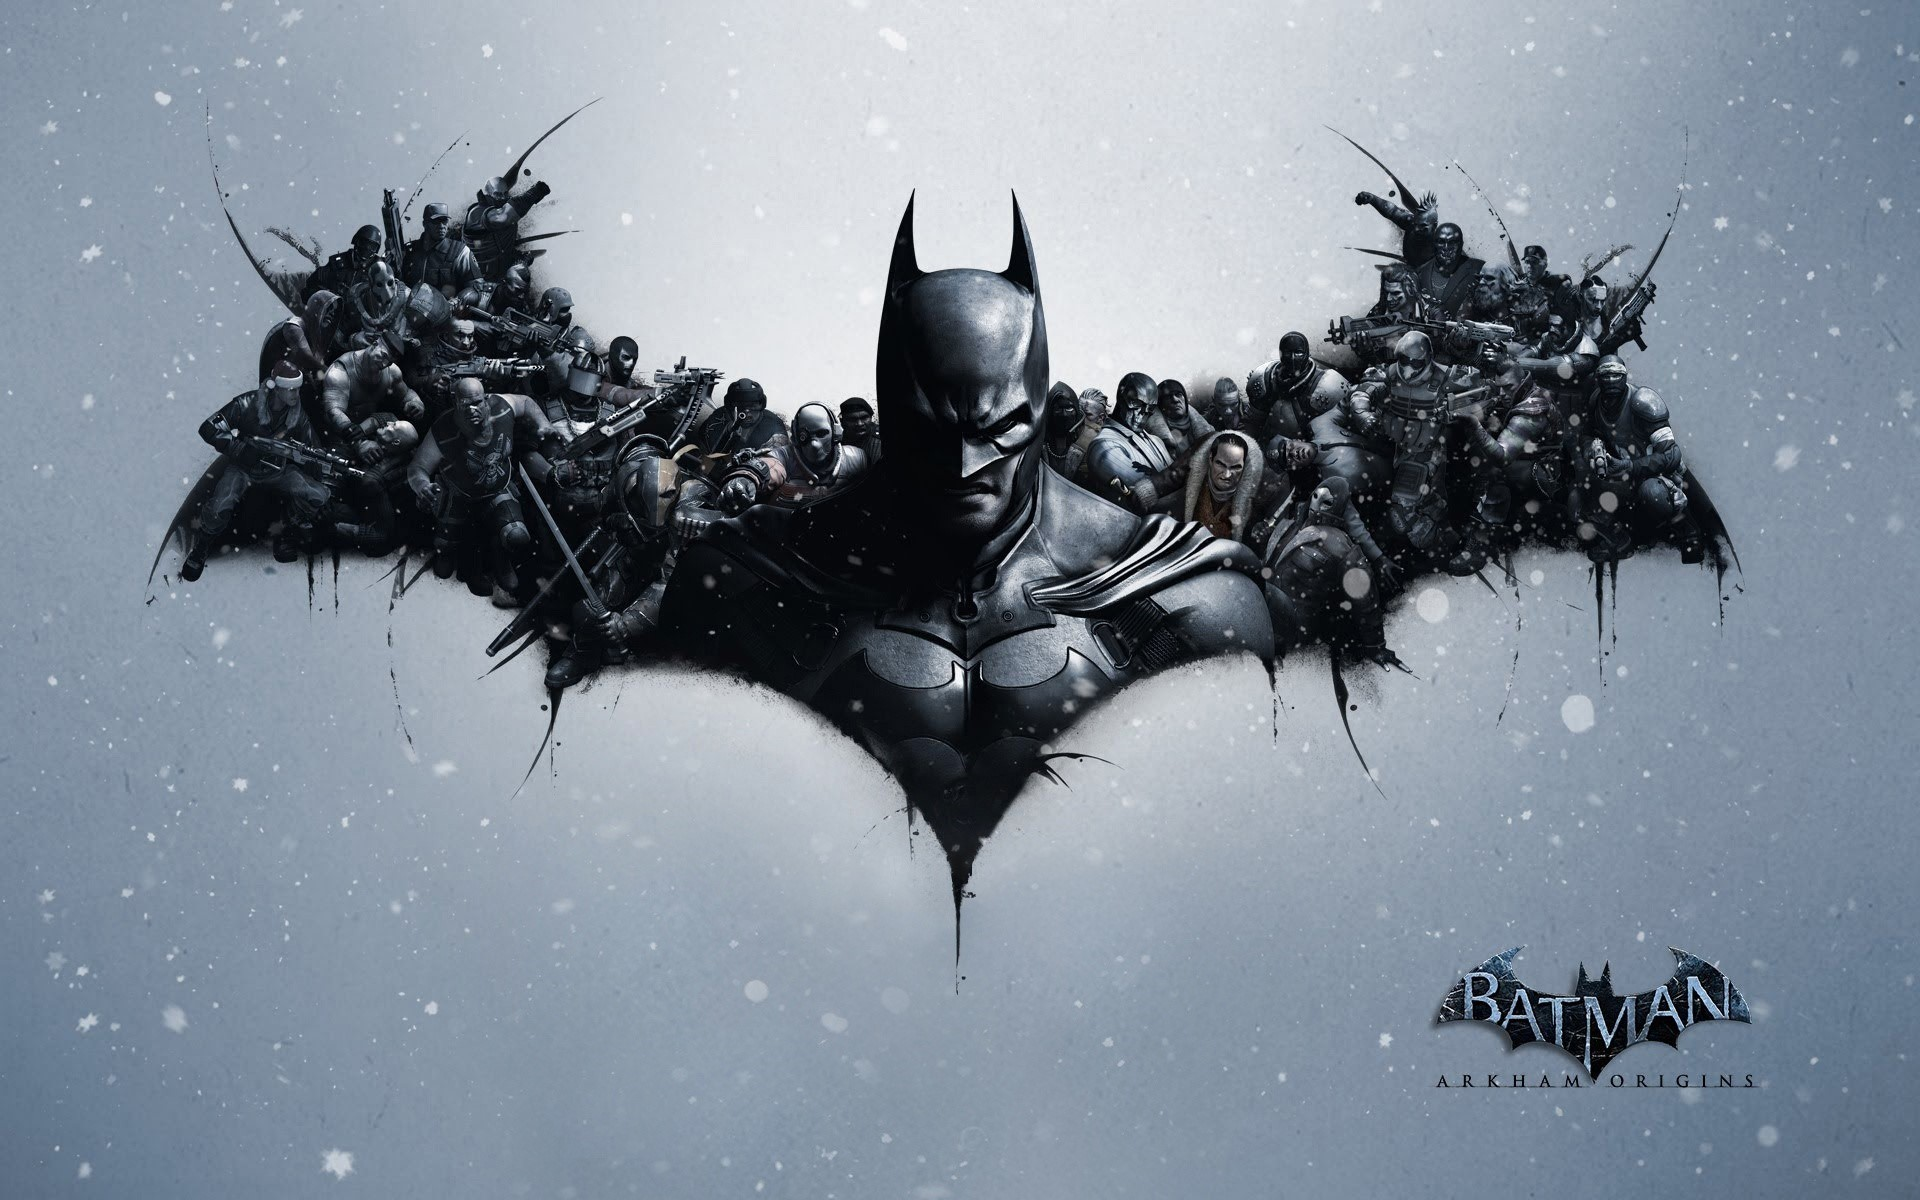 Wallpaper Video juego Batman Arkham origins Images